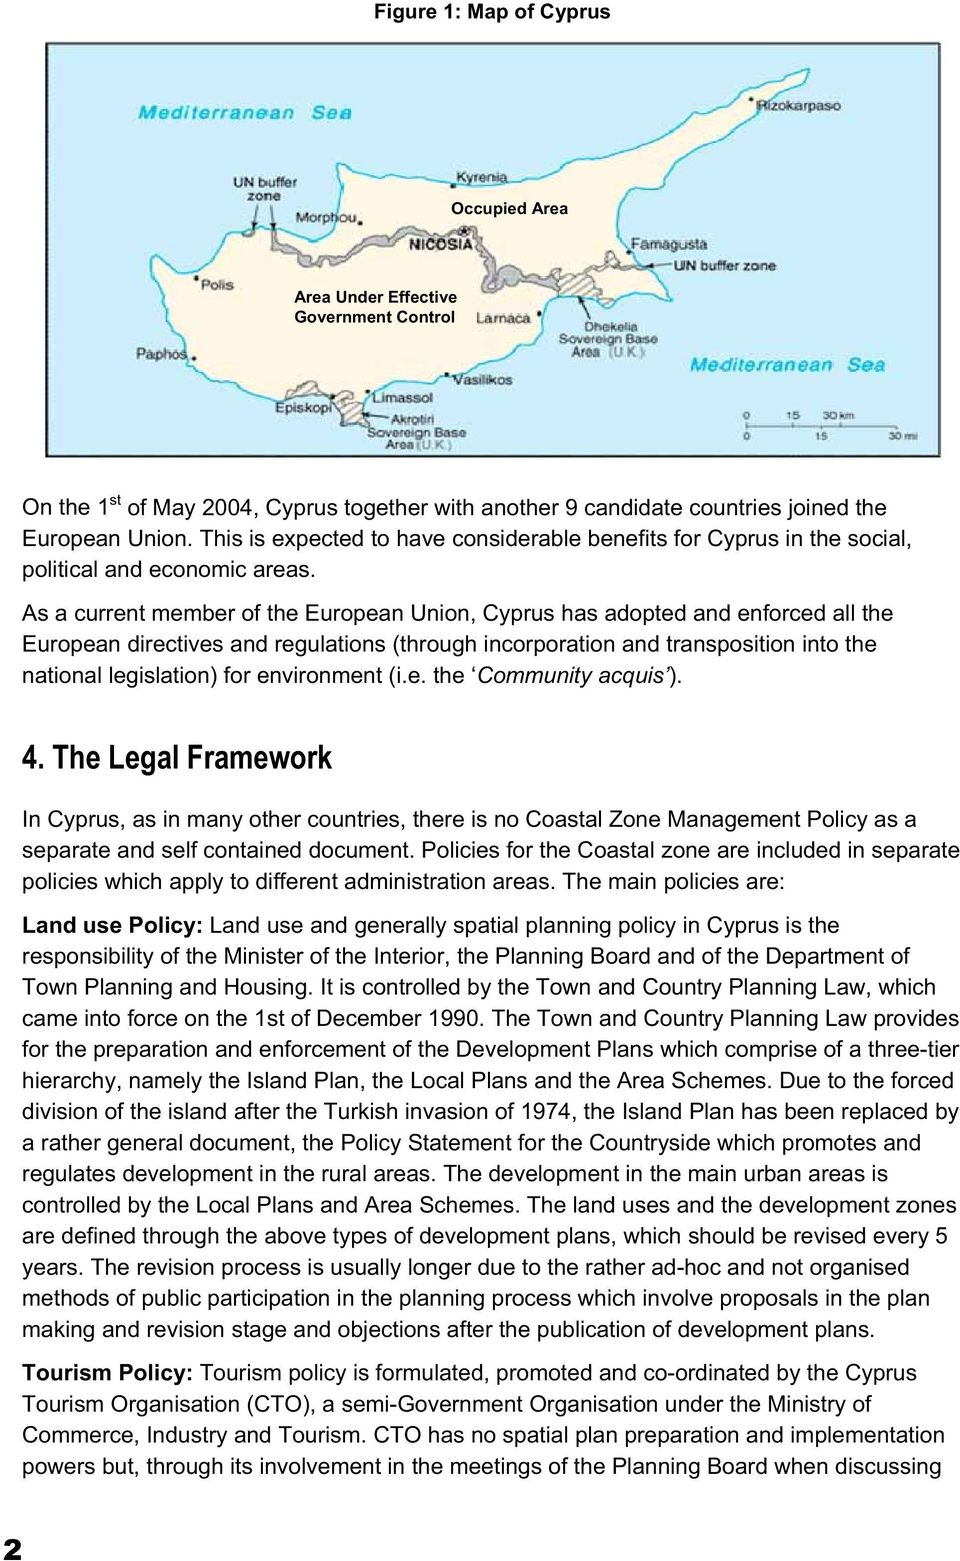 As a current member of the European Union, Cyprus has adopted and enforced all the European directives and regulations (through incorporation and transposition into the national legislation) for